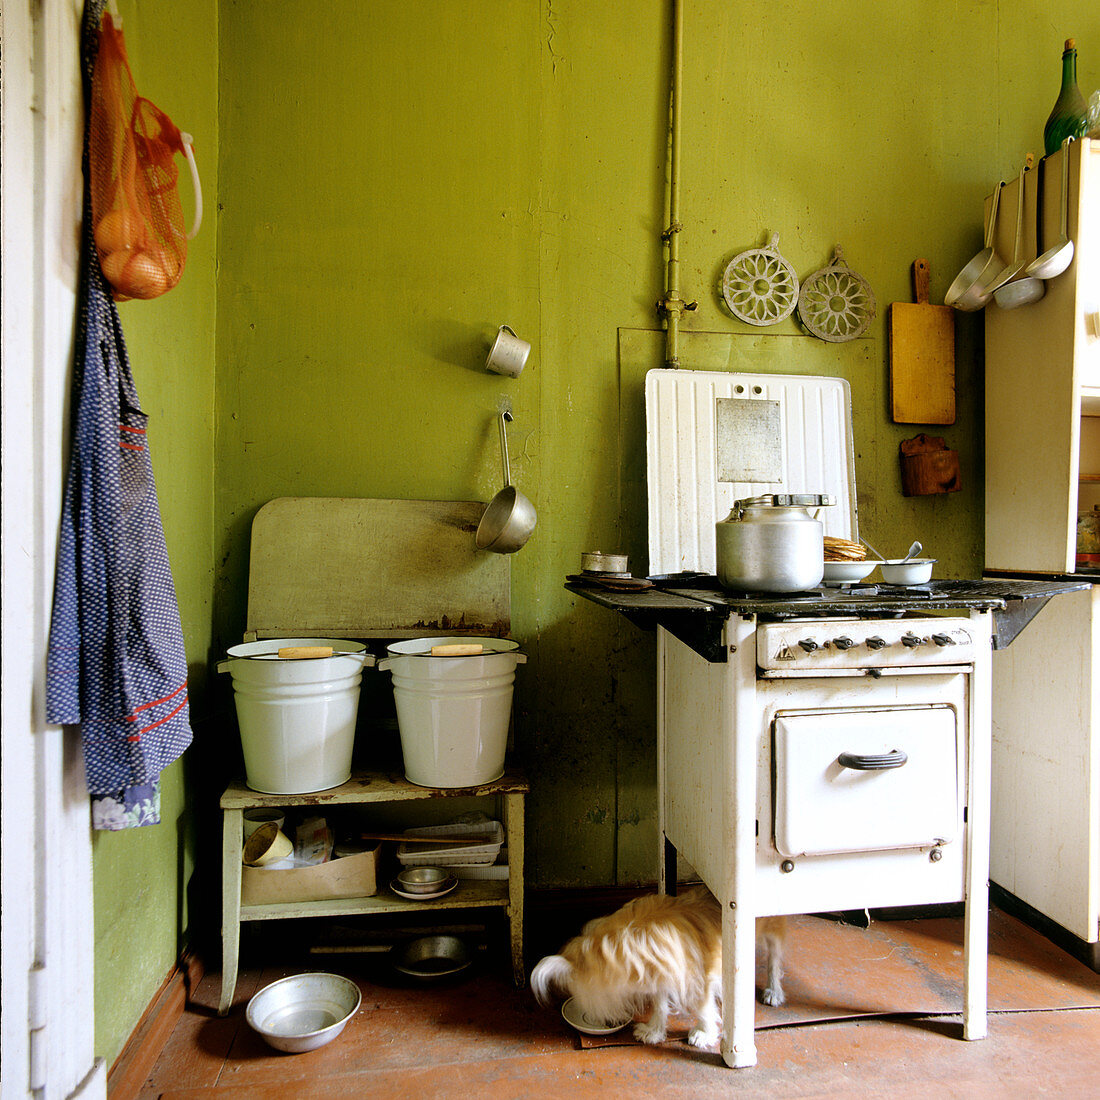 Vintage 50s cooker in plain kitchen with olive green walls and metal buckets on wooden bench